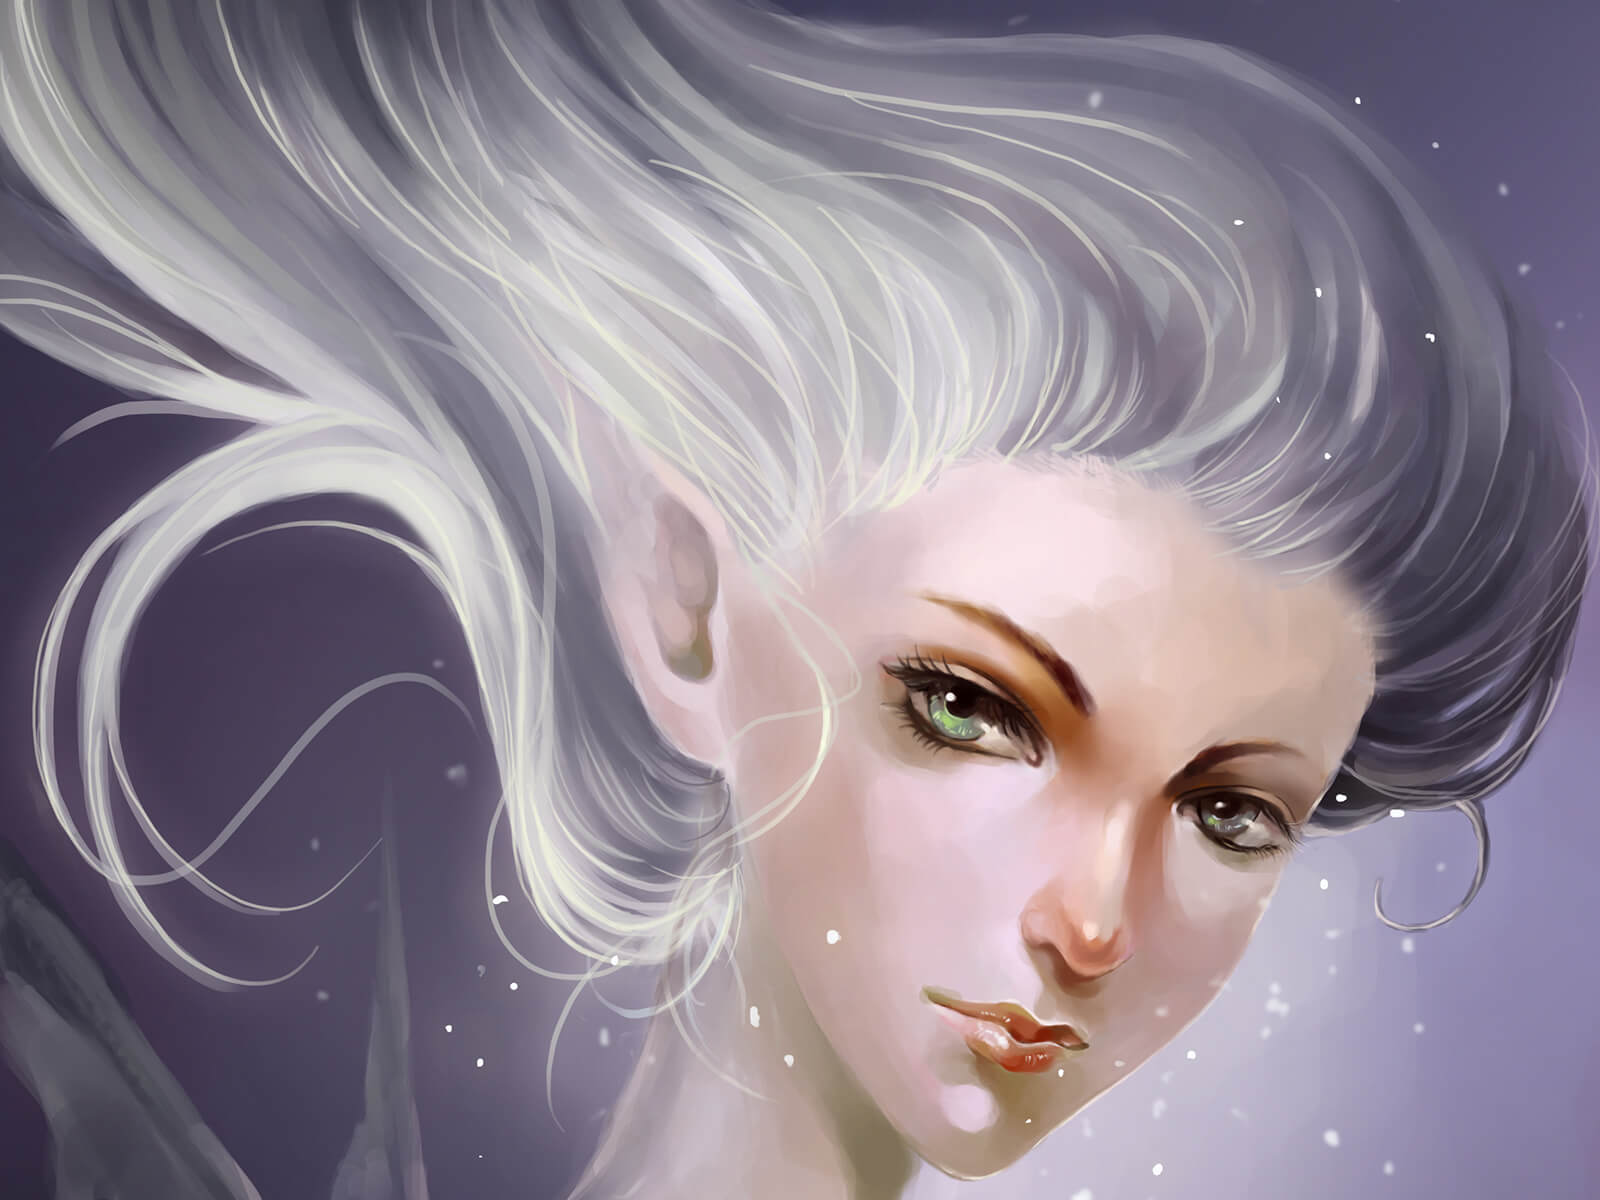 A portrait of a fairy-like character looking over her shoulder at the viewer, her white hair caught in an updraft.